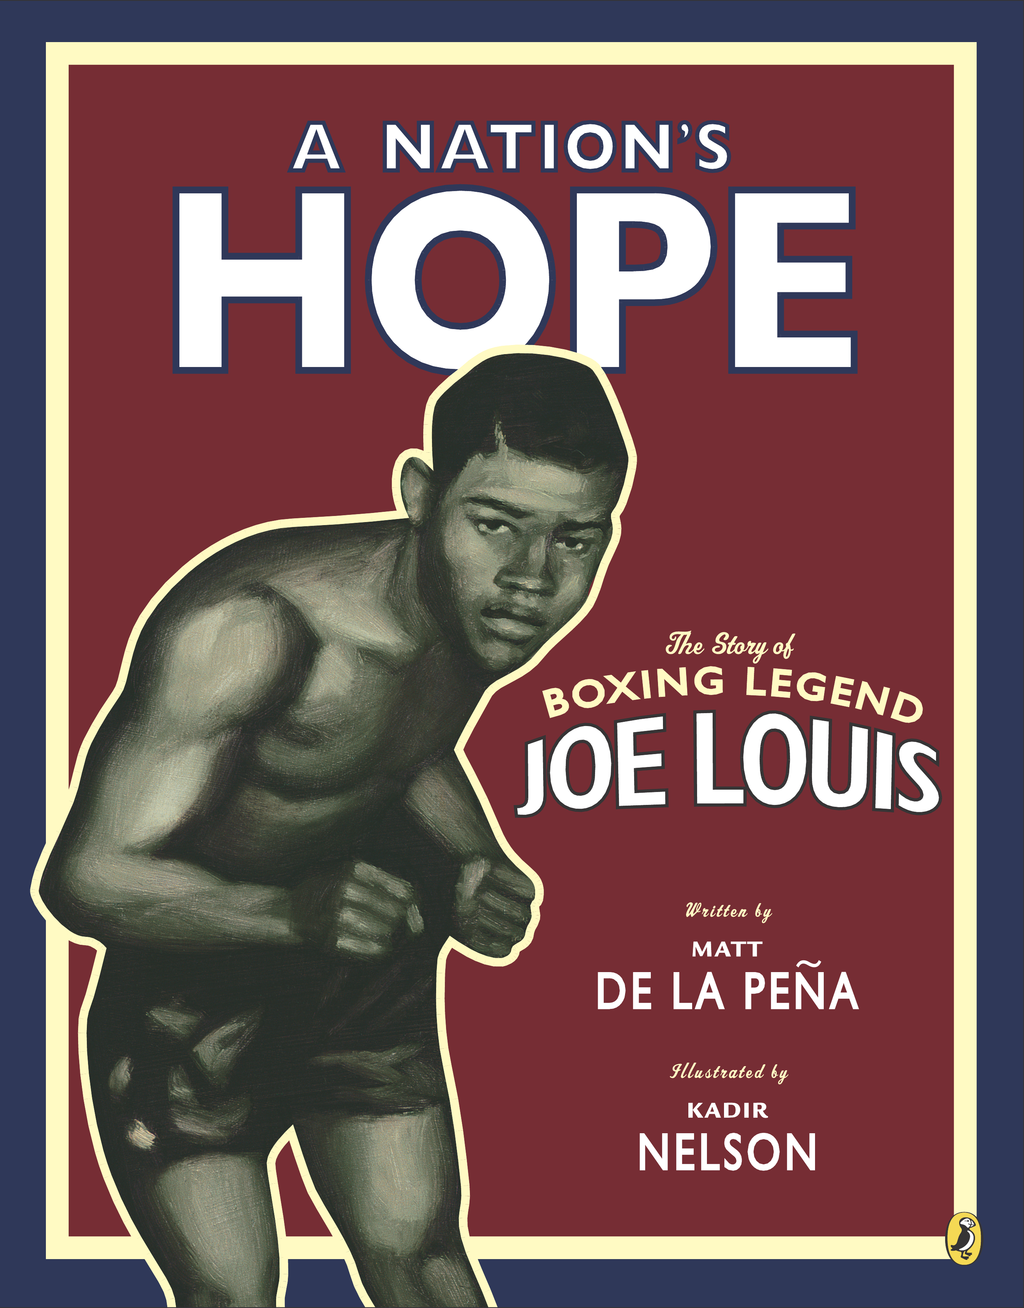 A Nation's Hope: The Story of Boxing Legend Joe Louis The Story of Boxing Legend Joe Louis